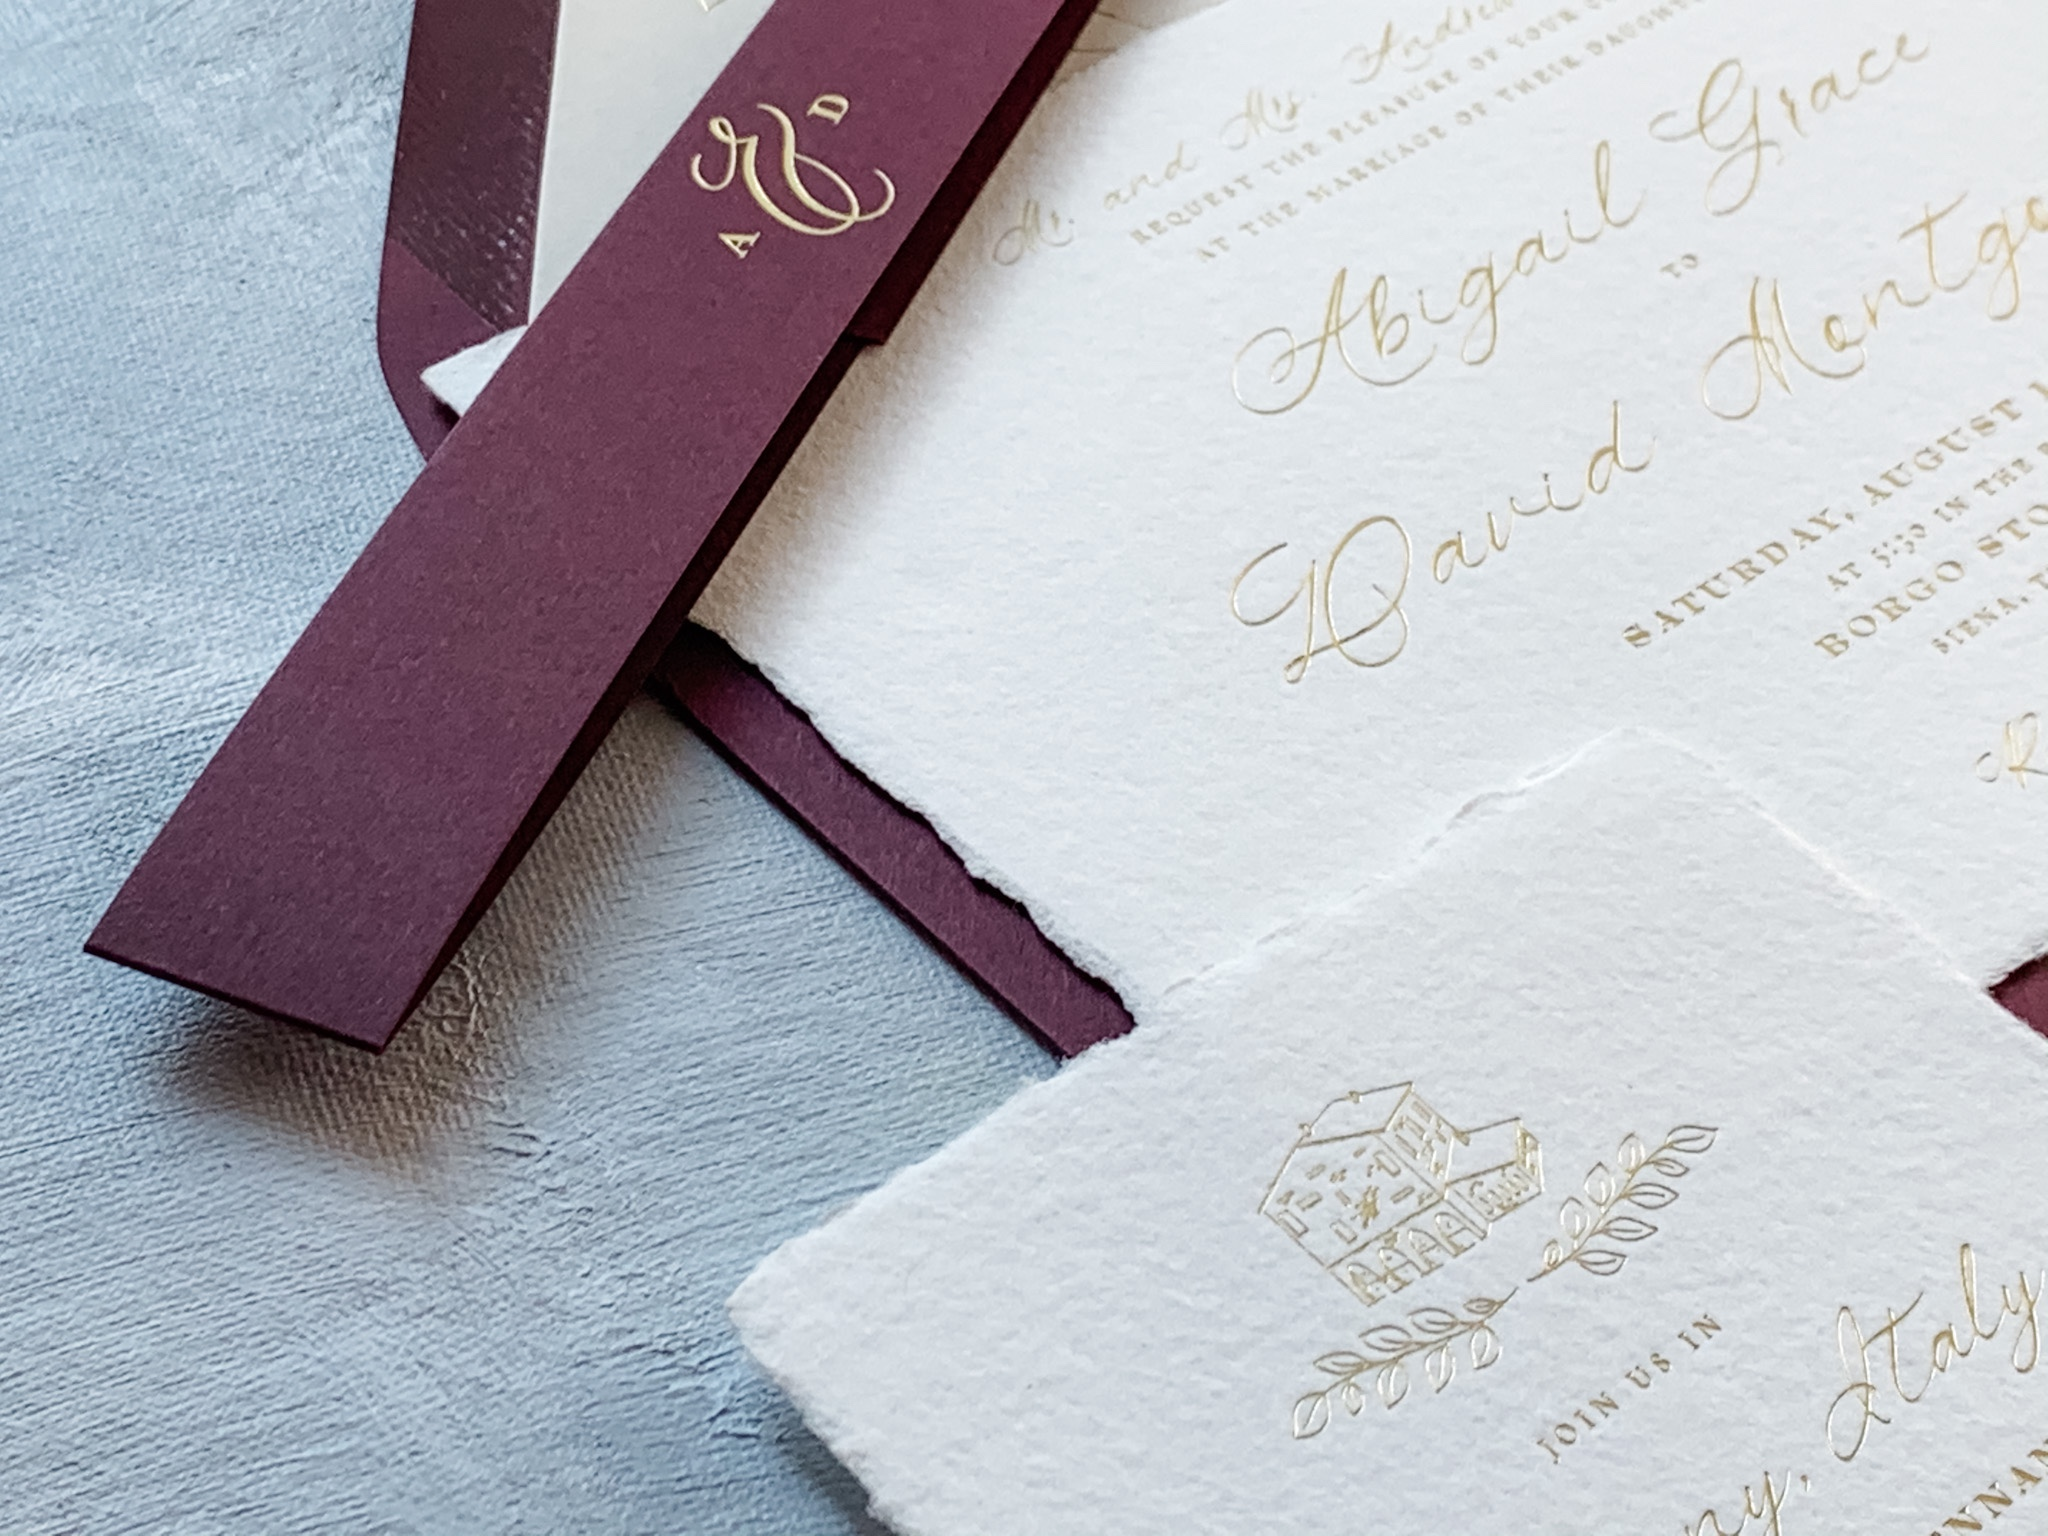 Handmade paper with a deckled edge is expertly foil stamped and accented with a wine colored belly band and  envelope.